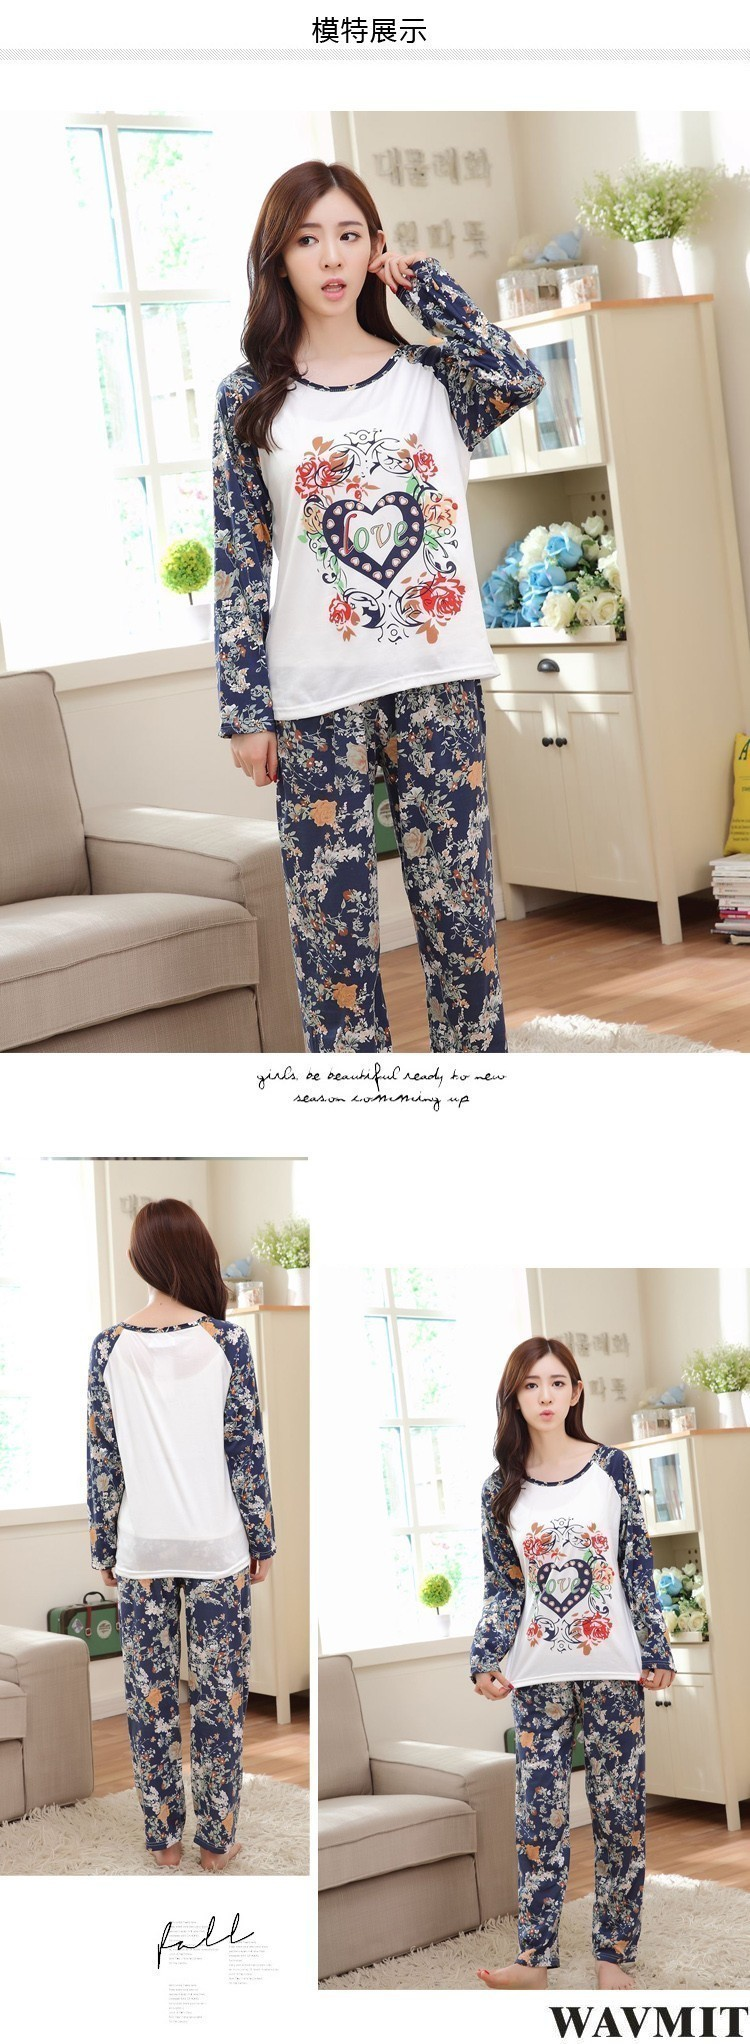 Spring Autumn 20 Style Thin Carton Generation Women pajamas Long Sleepwear Suit Home Women Female Sleep Top Wholesale Pajamas 20